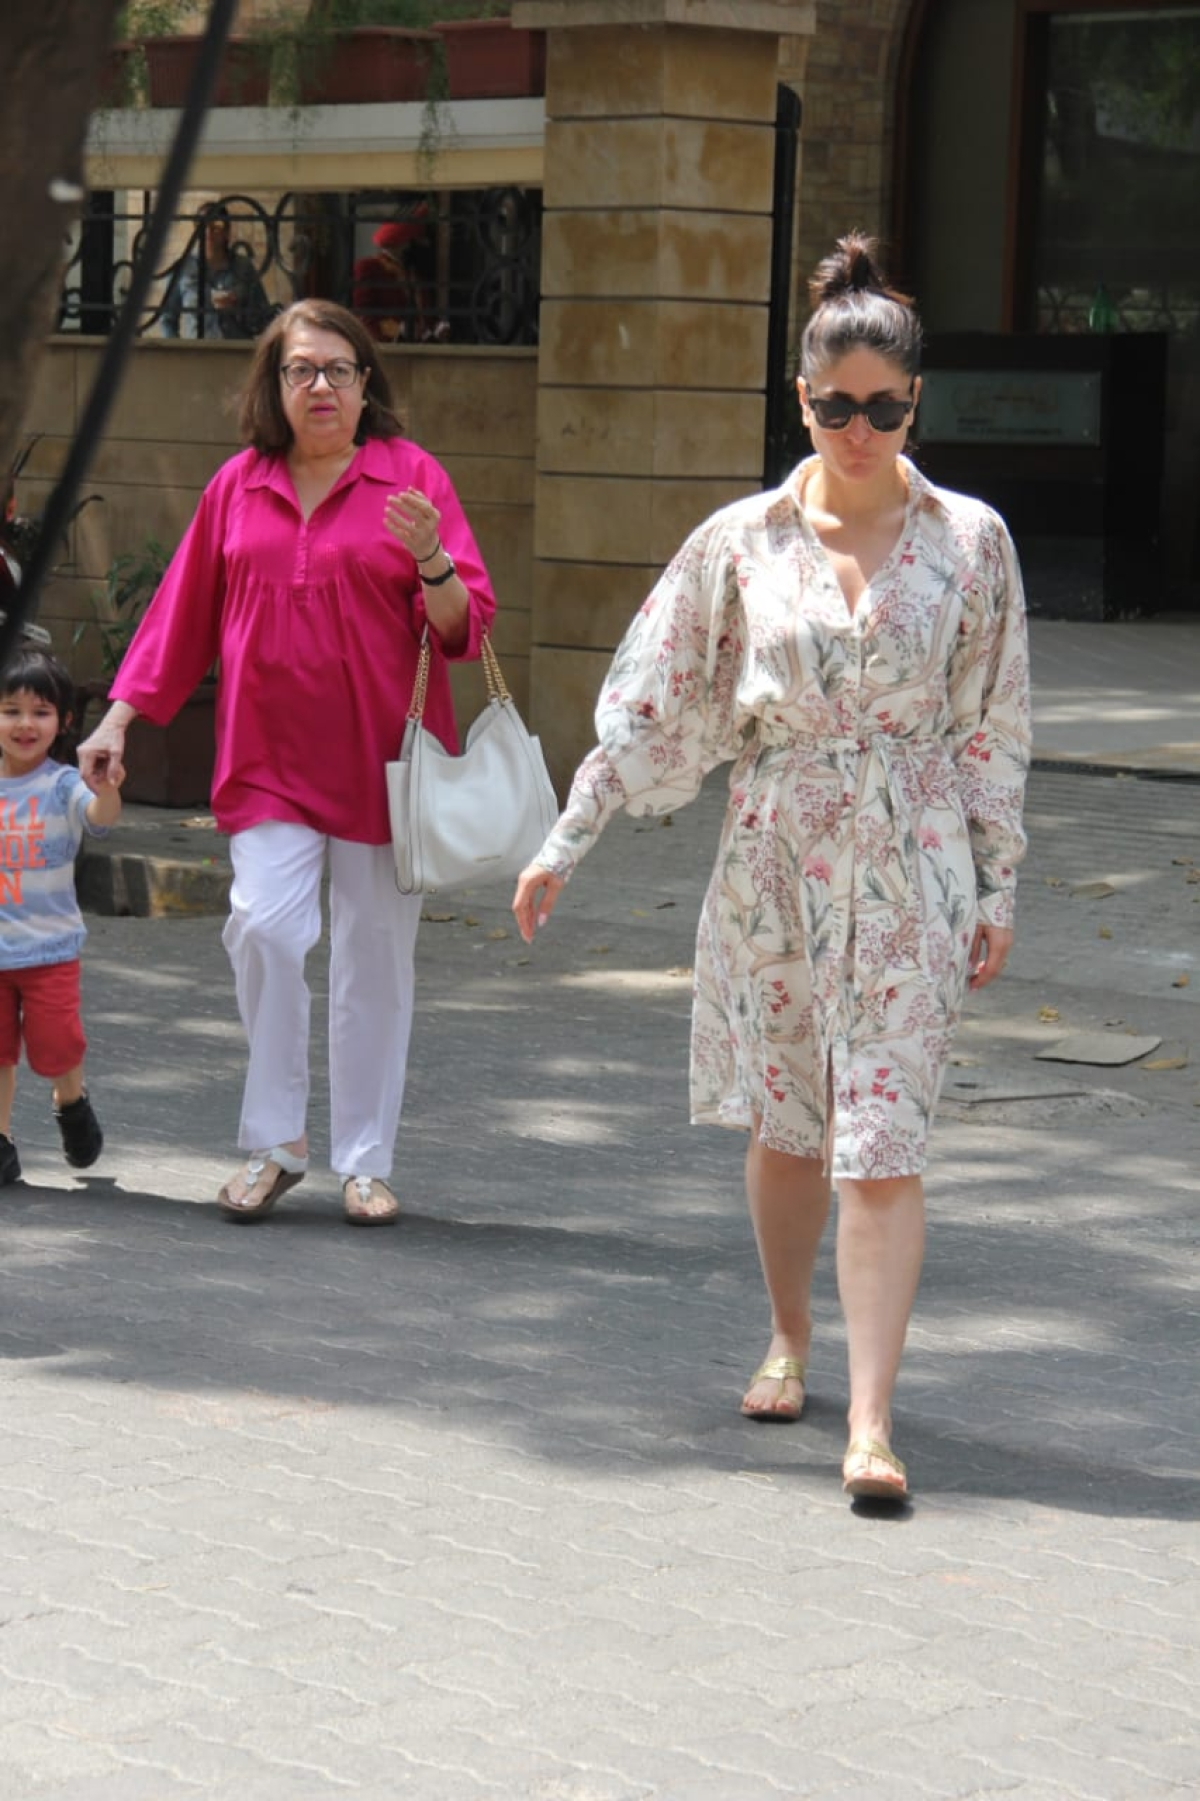 Taimur matches his vibe with mom Kareena Kapoor with a quirky text t-shirt